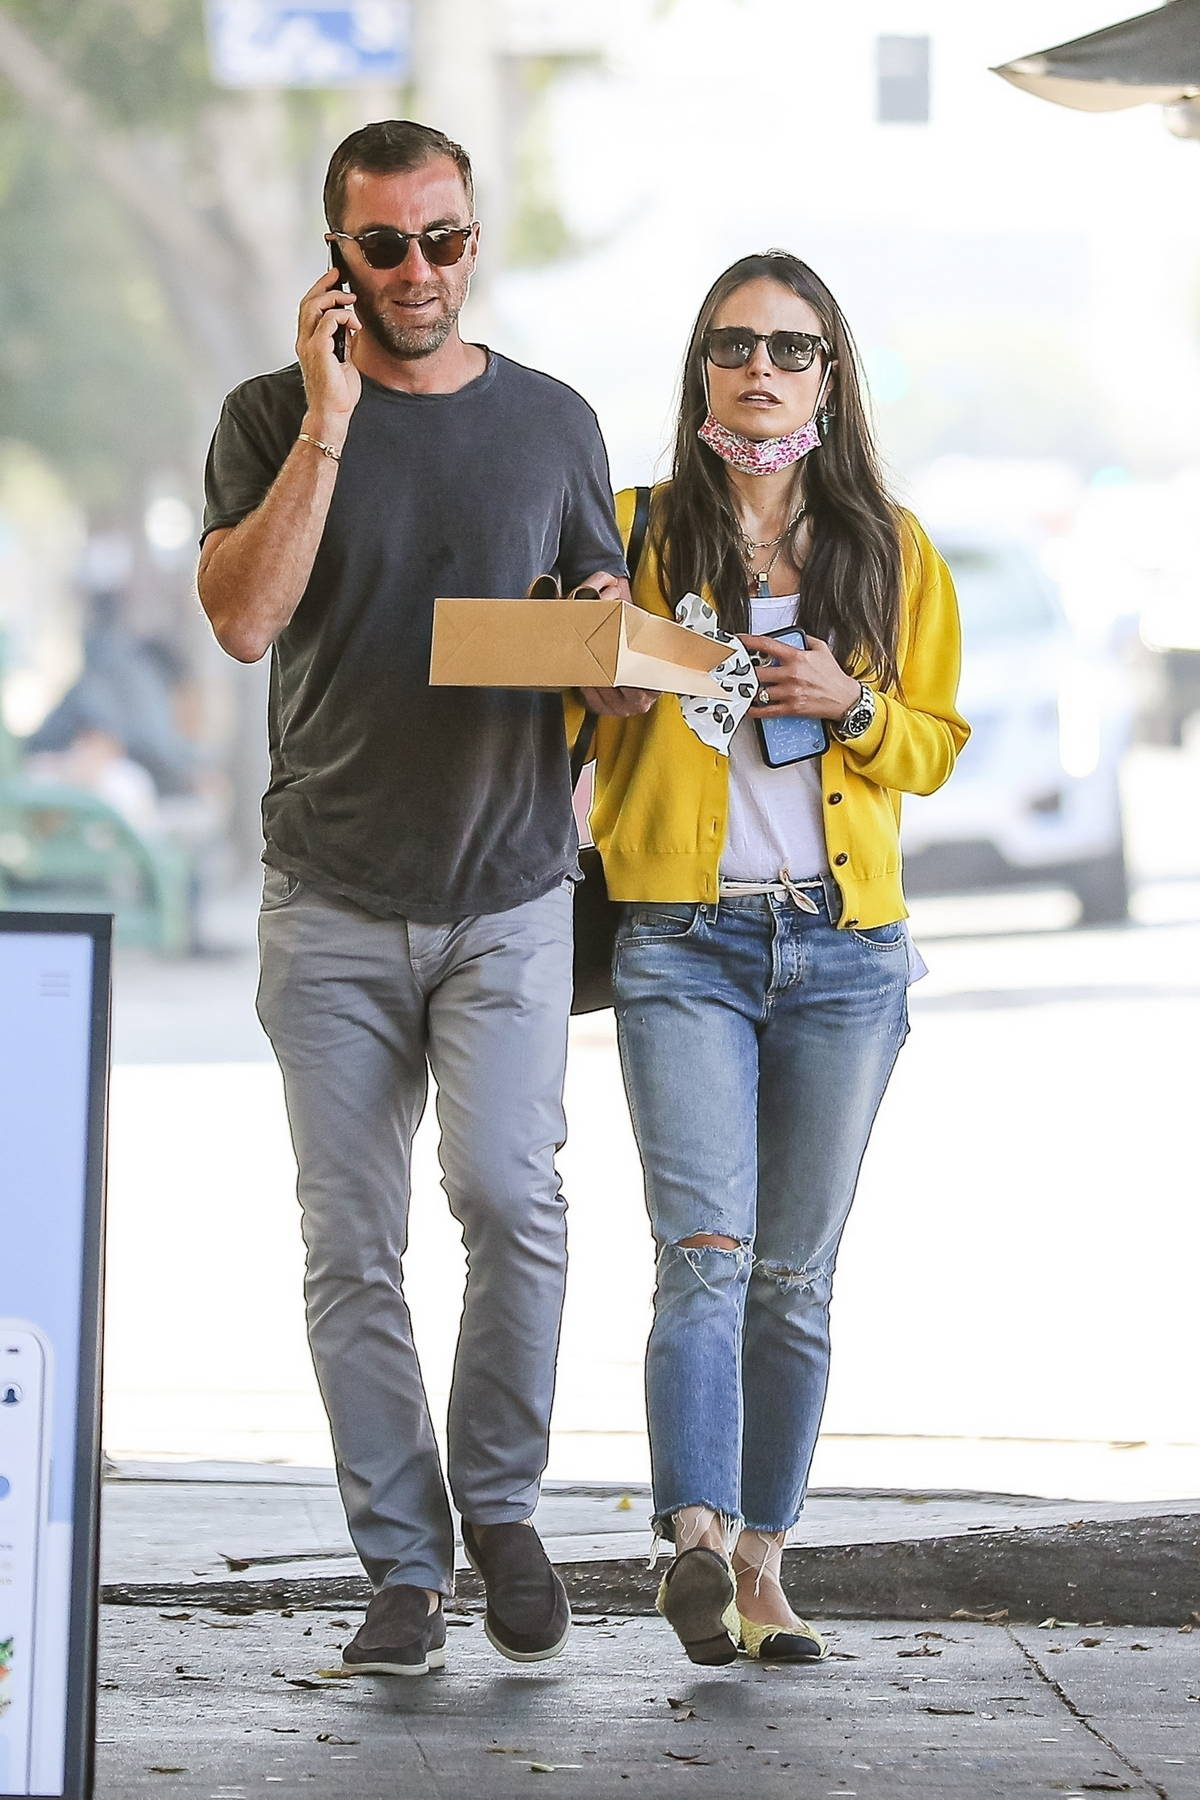 Jordana Brewster shows off her engagement ring during a shopping trip with fiancé Mason Morfit in Hollywood, California